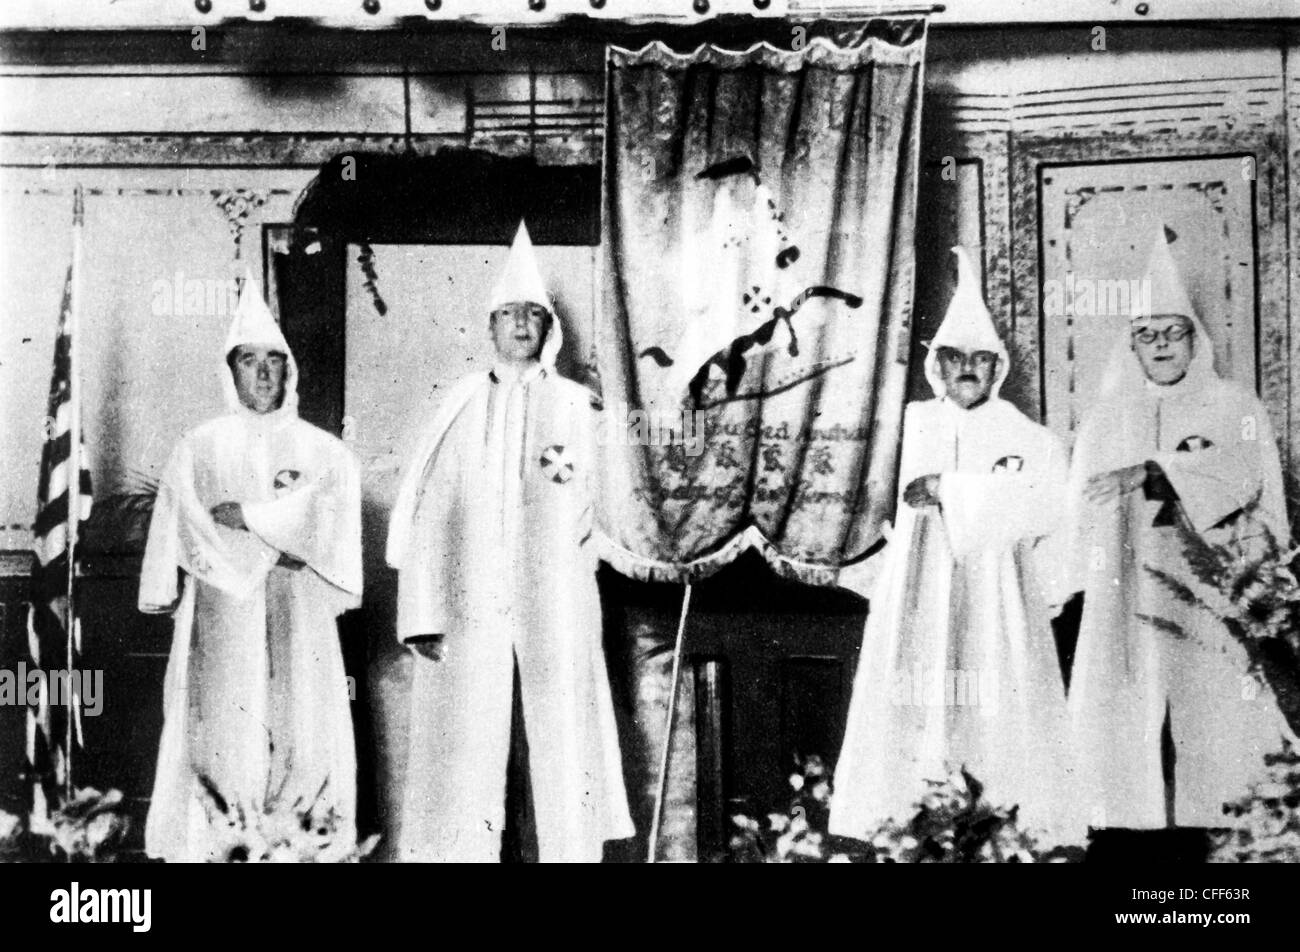 A ceremony of the Ku Klux Klan,kkk,usa,1920 - Stock Image